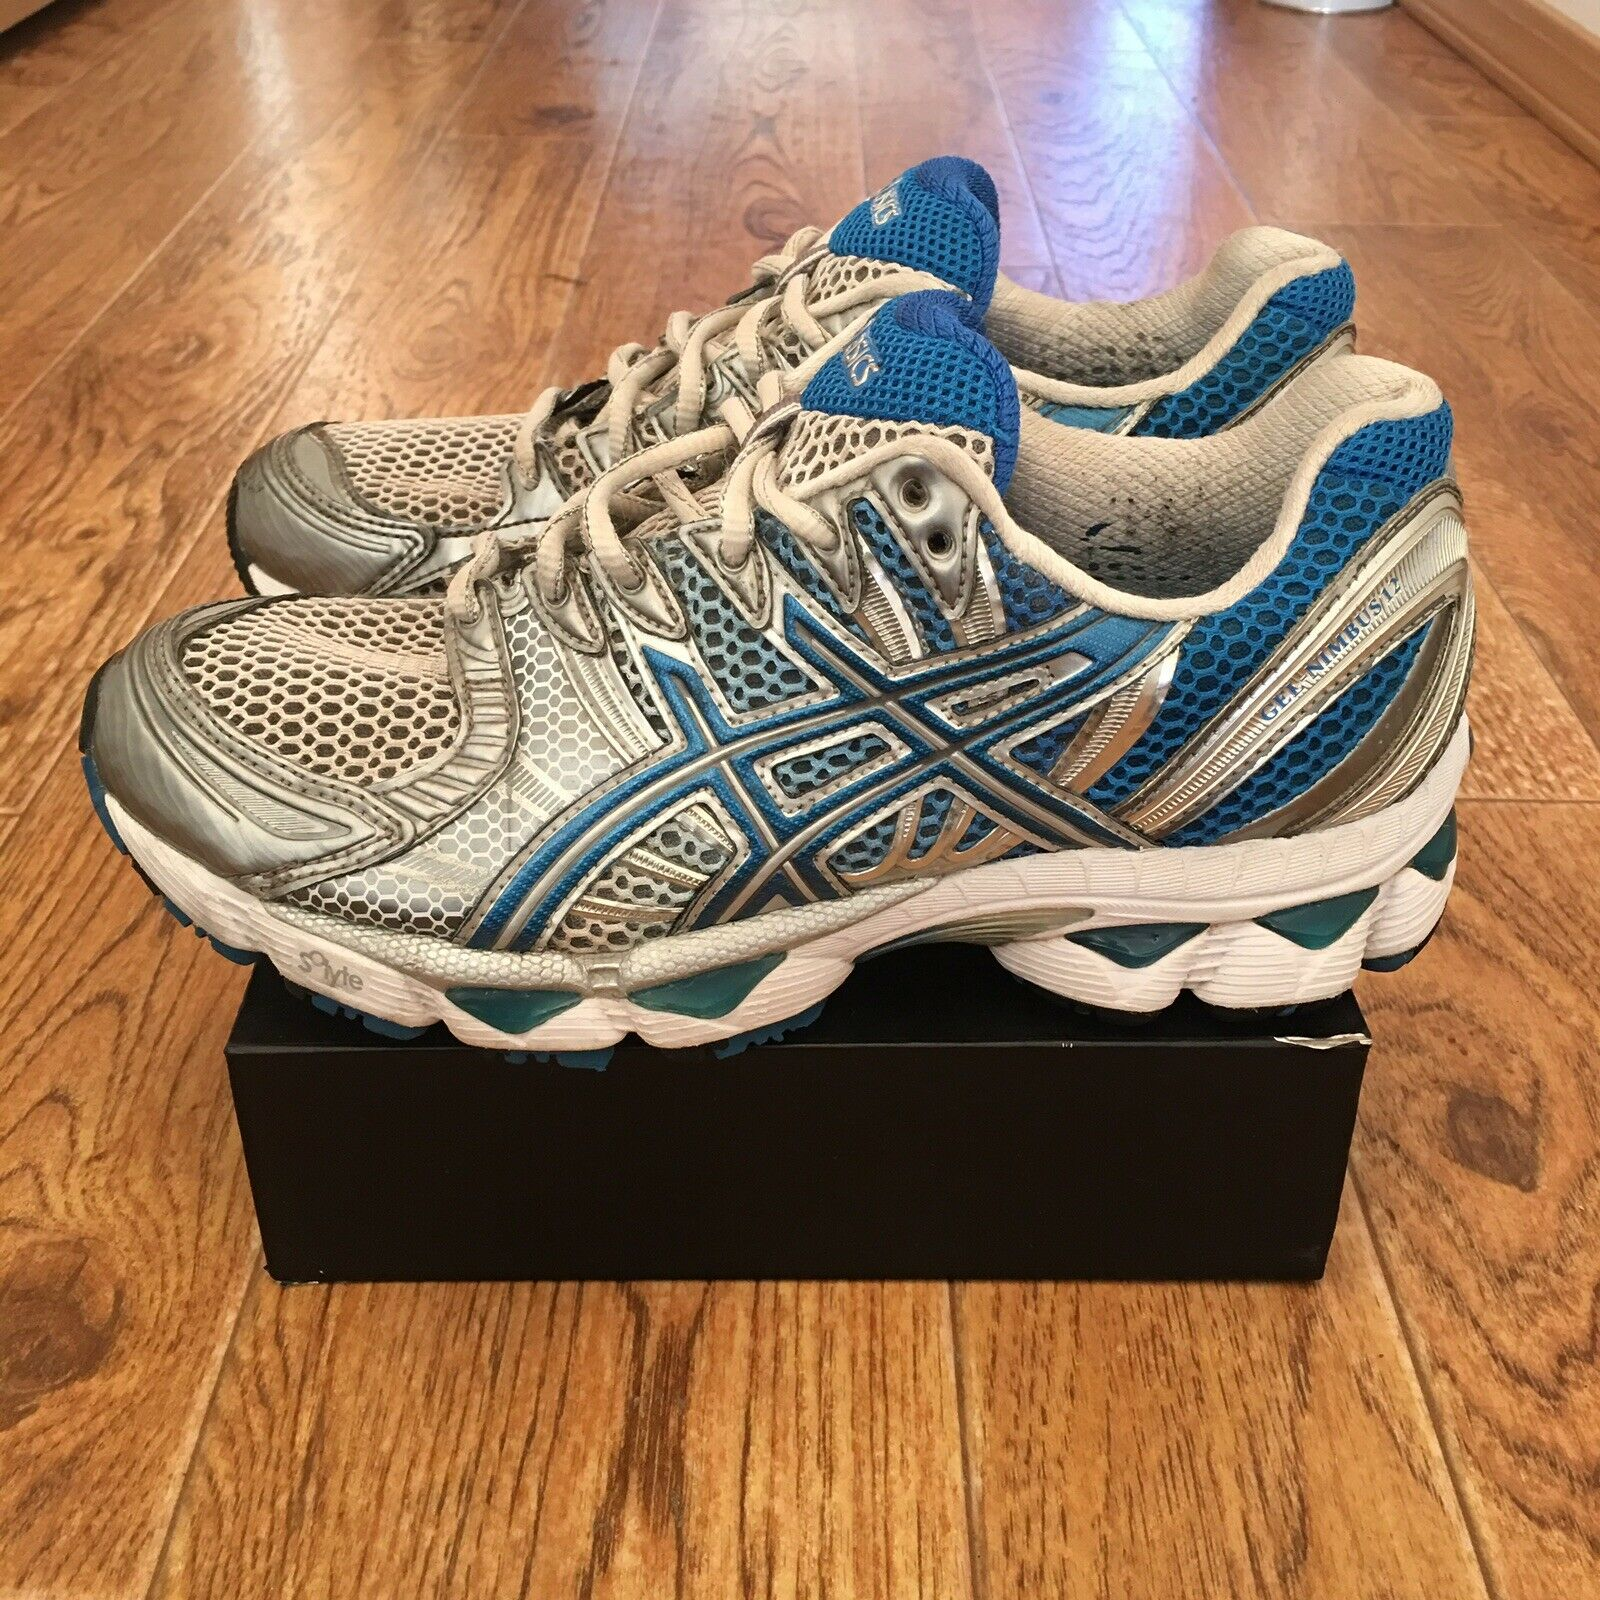 0c5d9c7049 UPC 883722810009 product image for Asics Gel-nimbus 12 Women's Running  Shoes Size 7.5 Silver ...